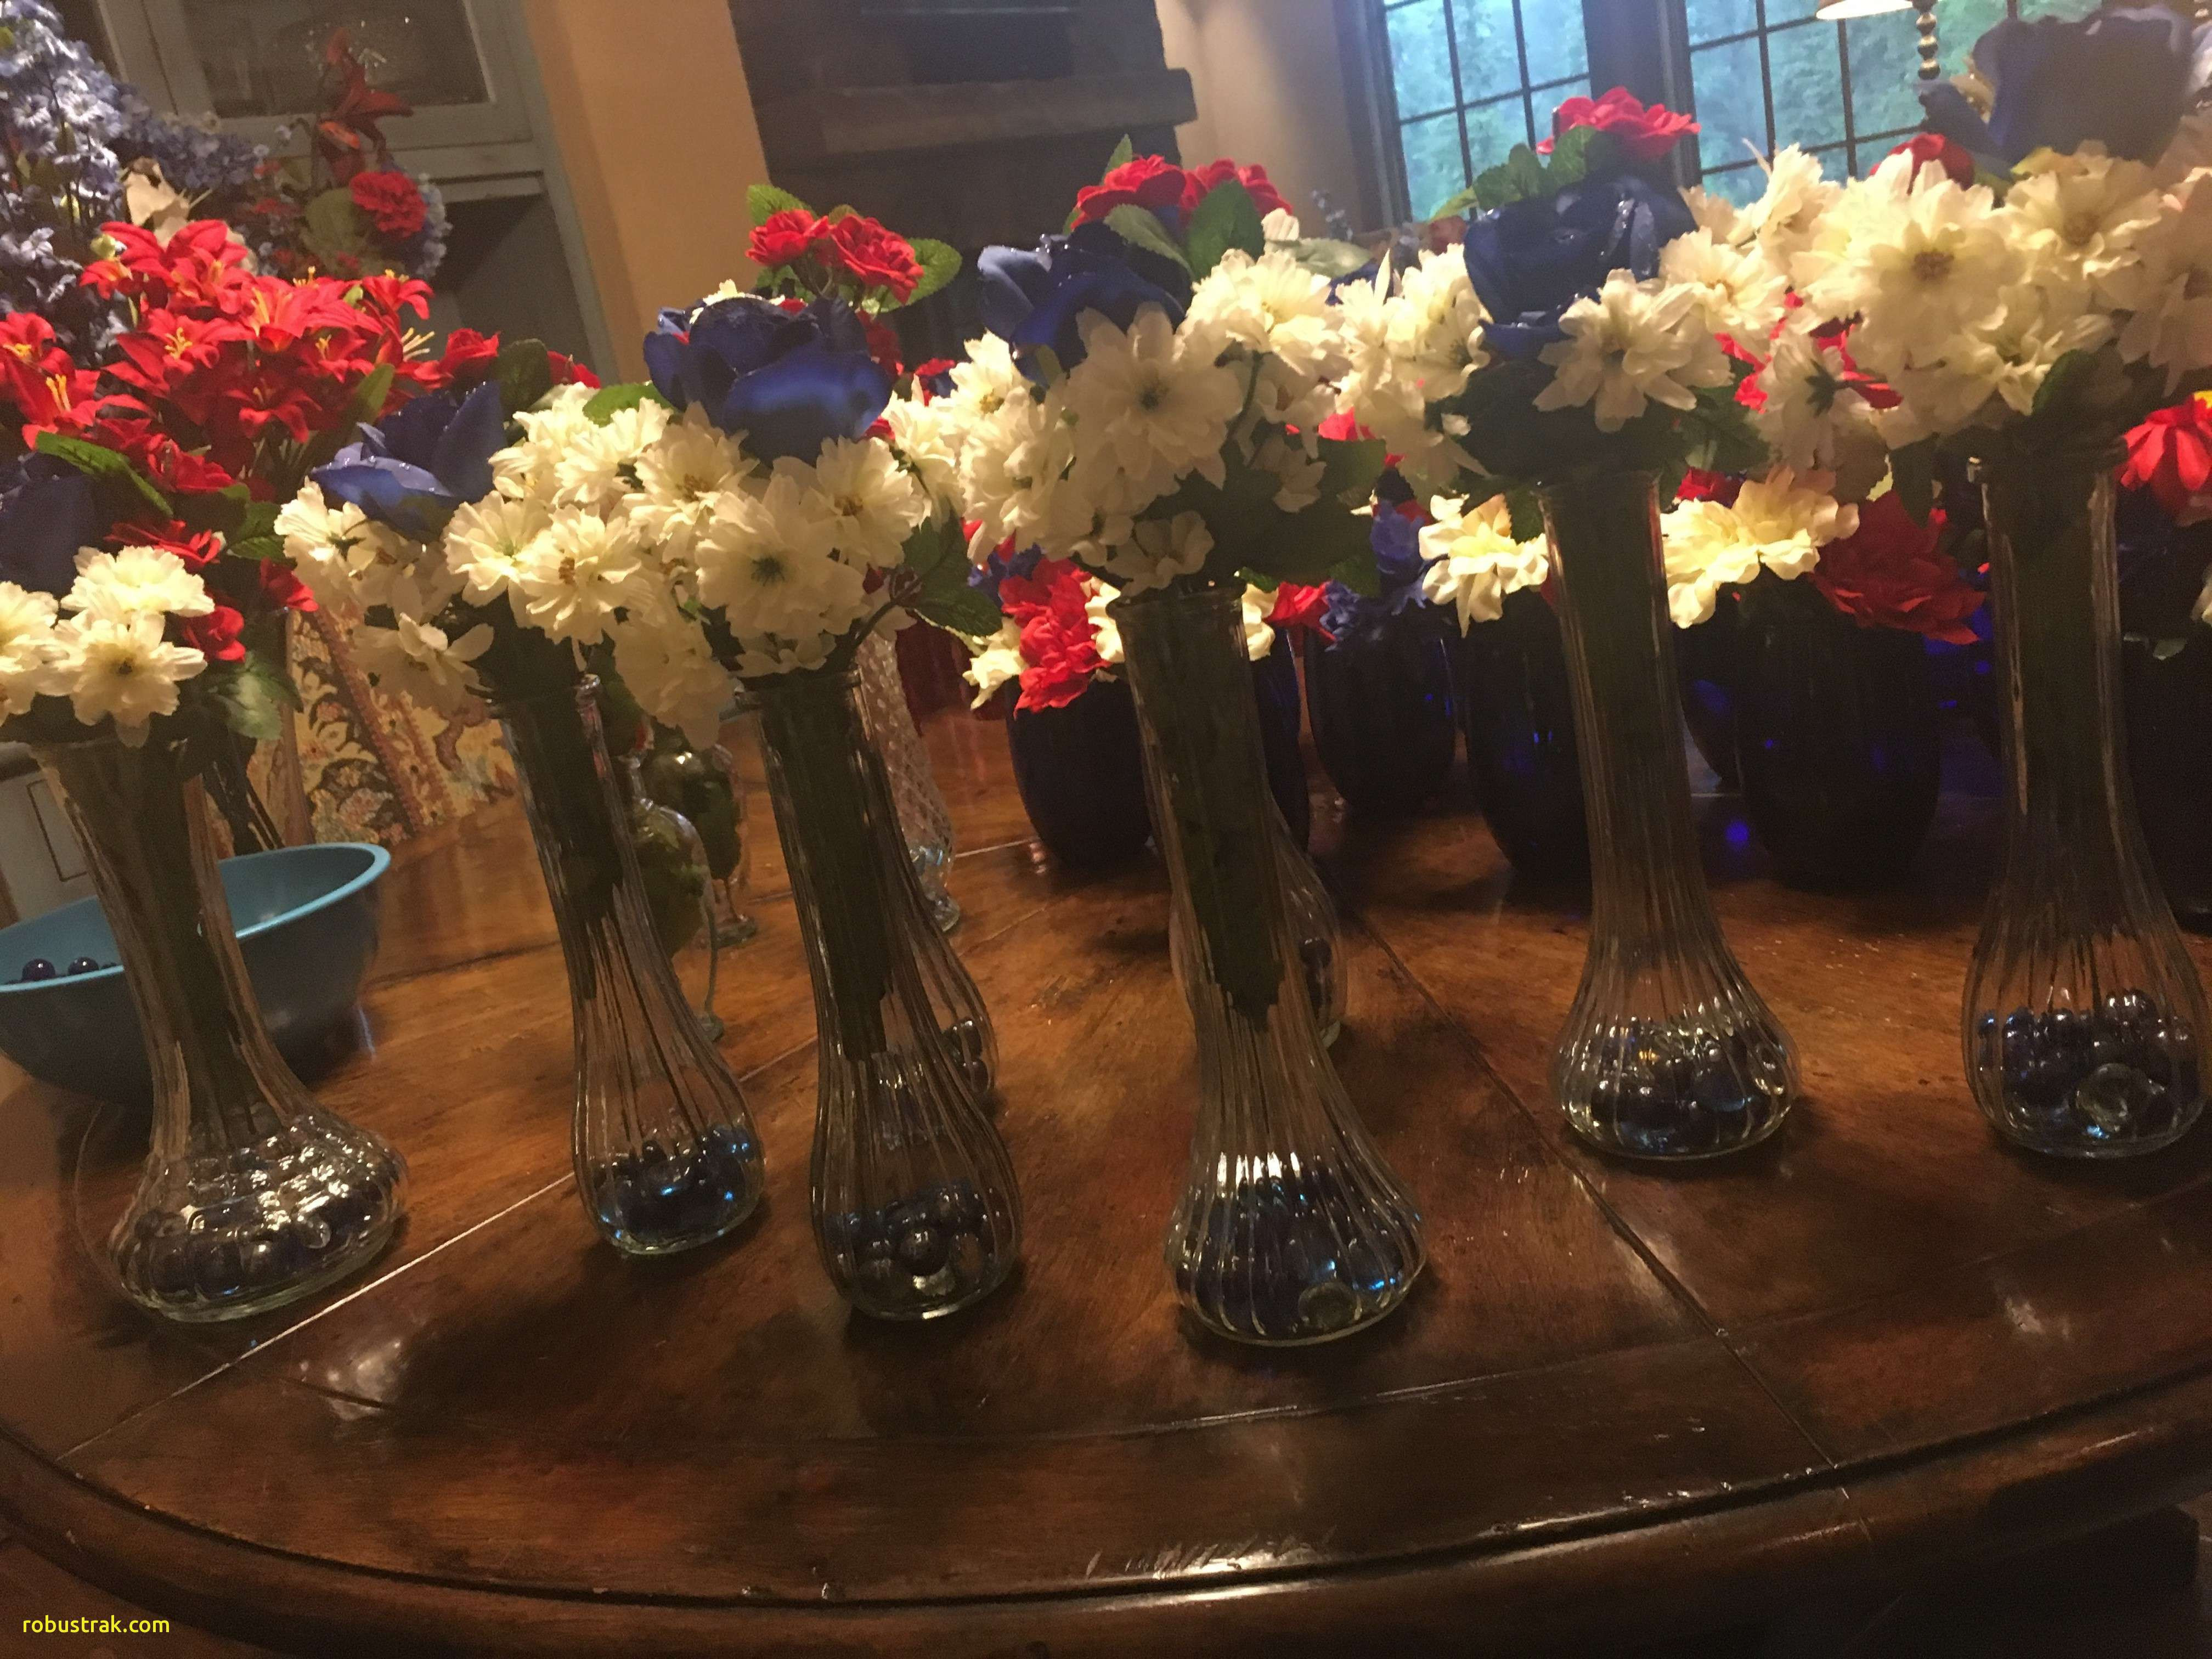 Pretty Flower Vases Of Beautiful Floral Wedding Decoration Ideas Home Design Ideas with Dollar Tree Wedding Decorations Awesome H Vases Dollar Vase I 0d Design Floral Decoration